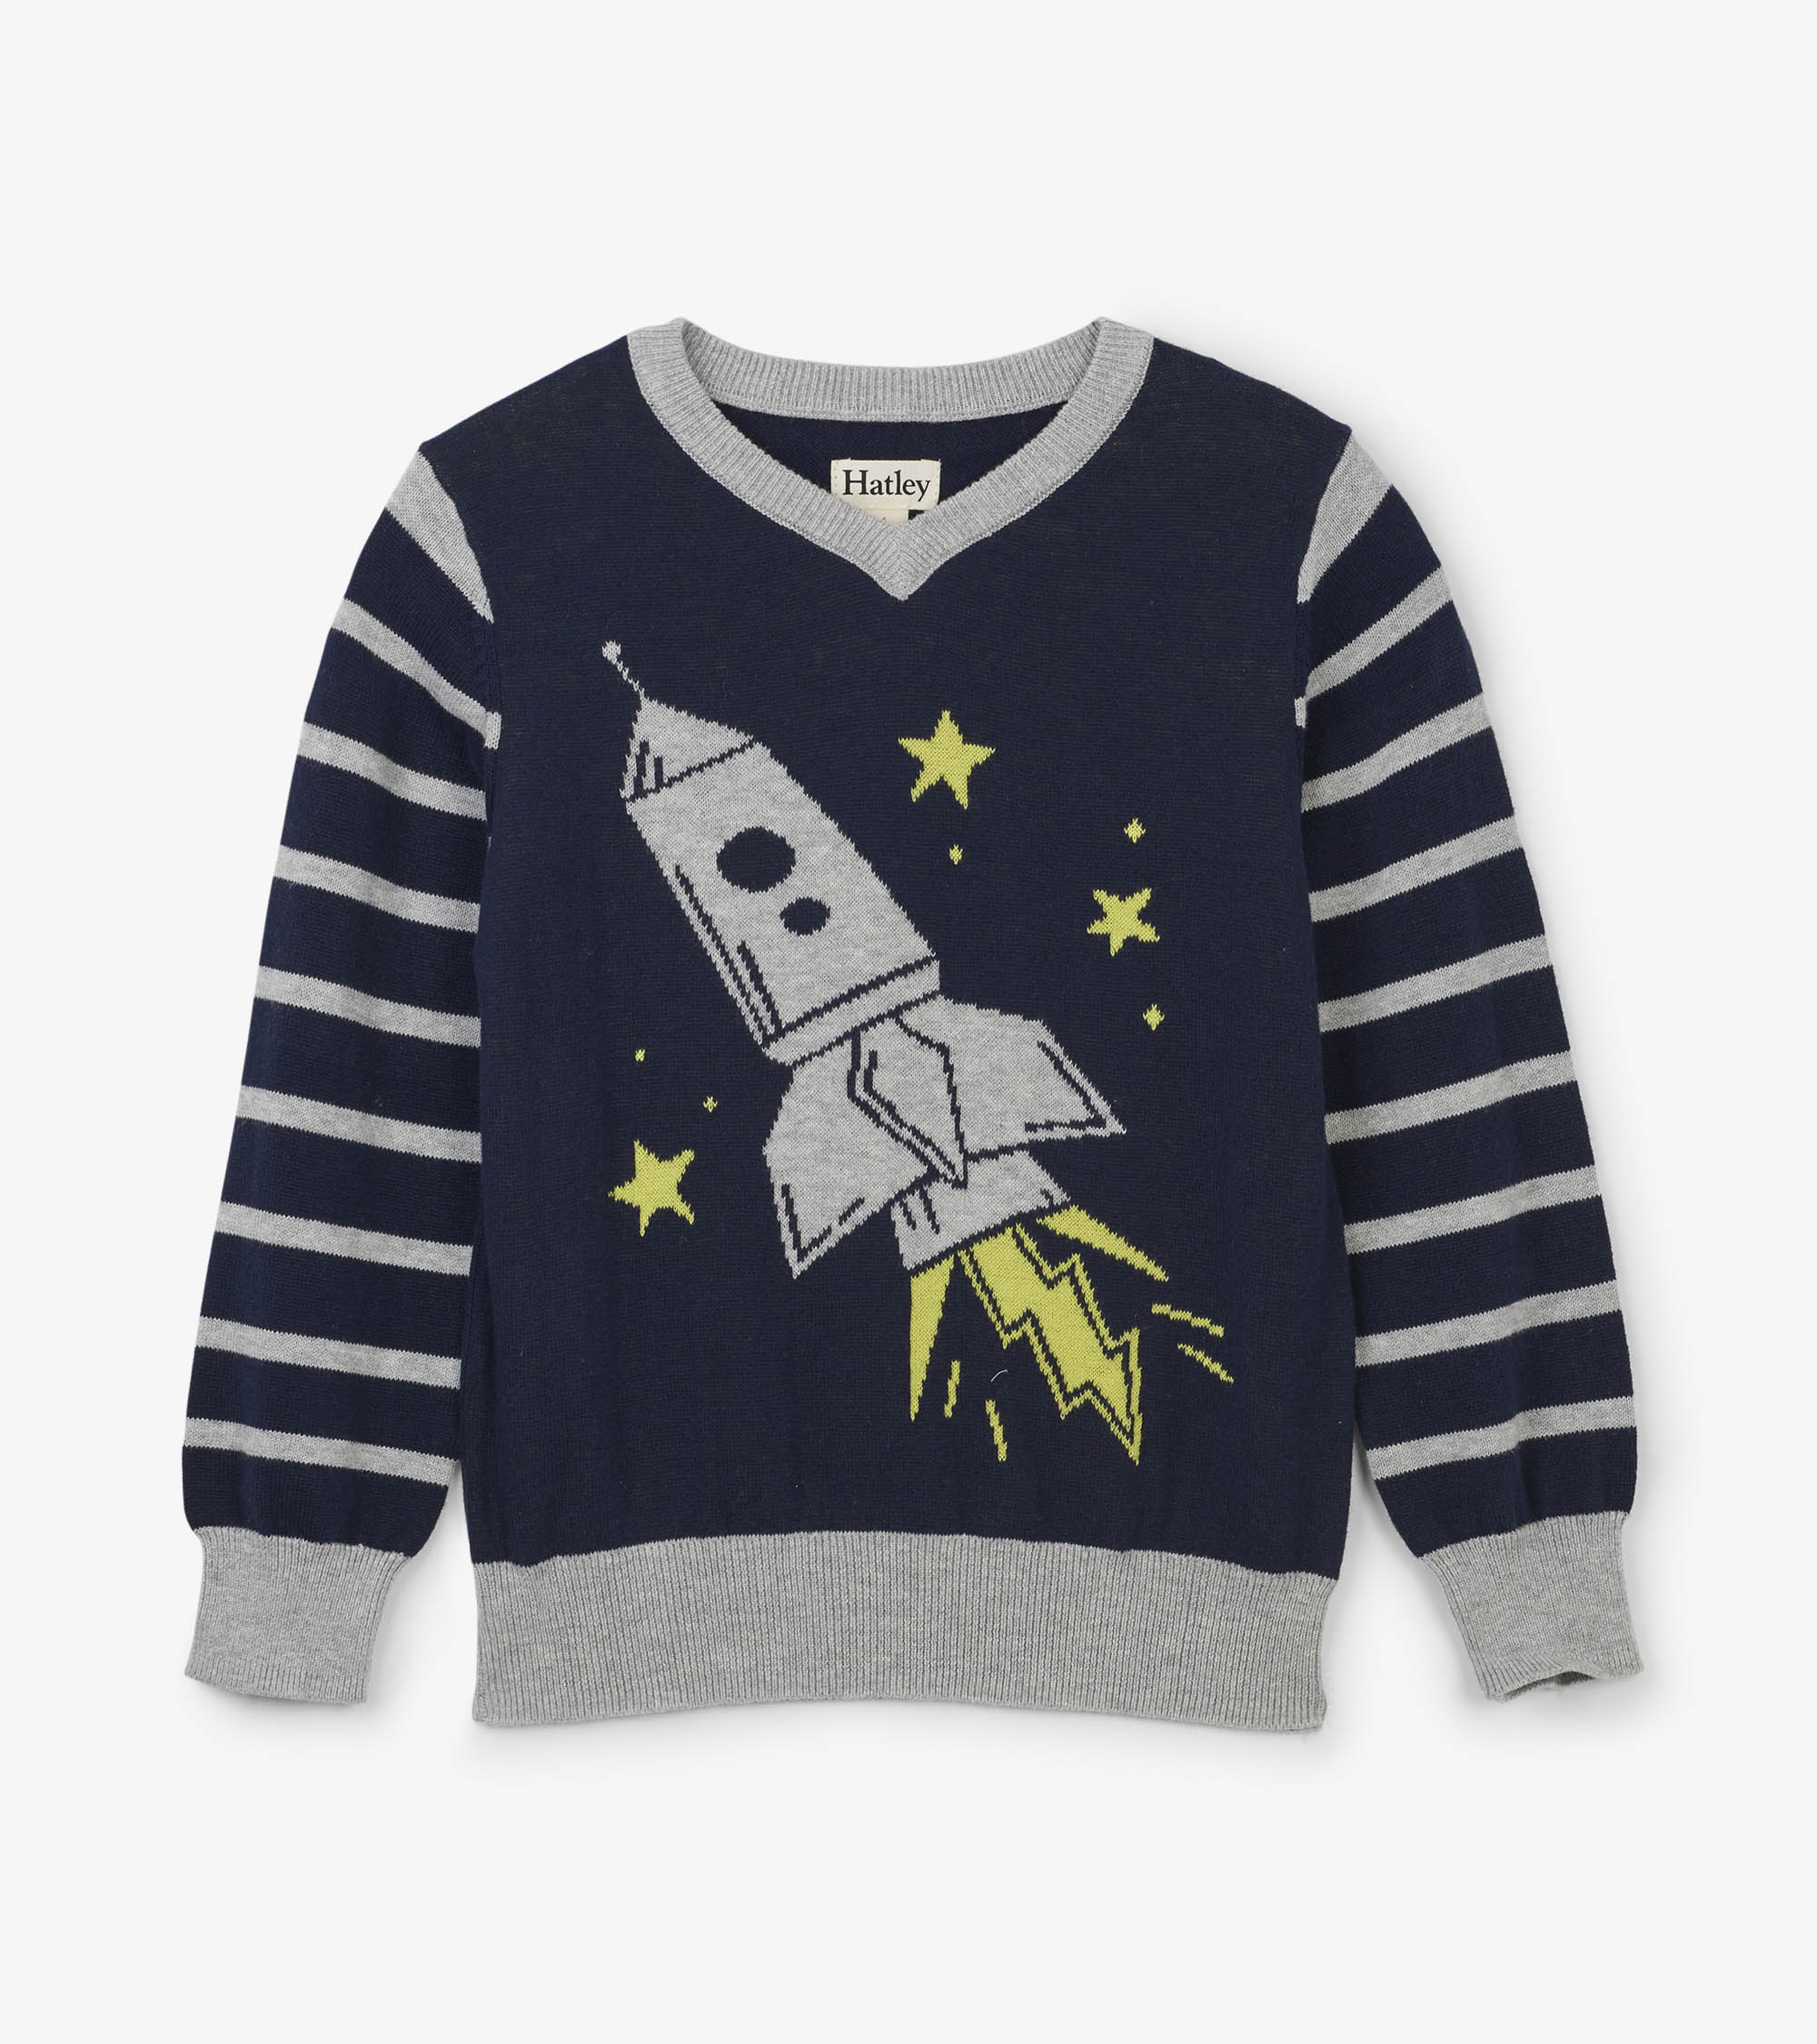 NOW £15 Hatley Rocket V-Neck Sweater (Was £30)